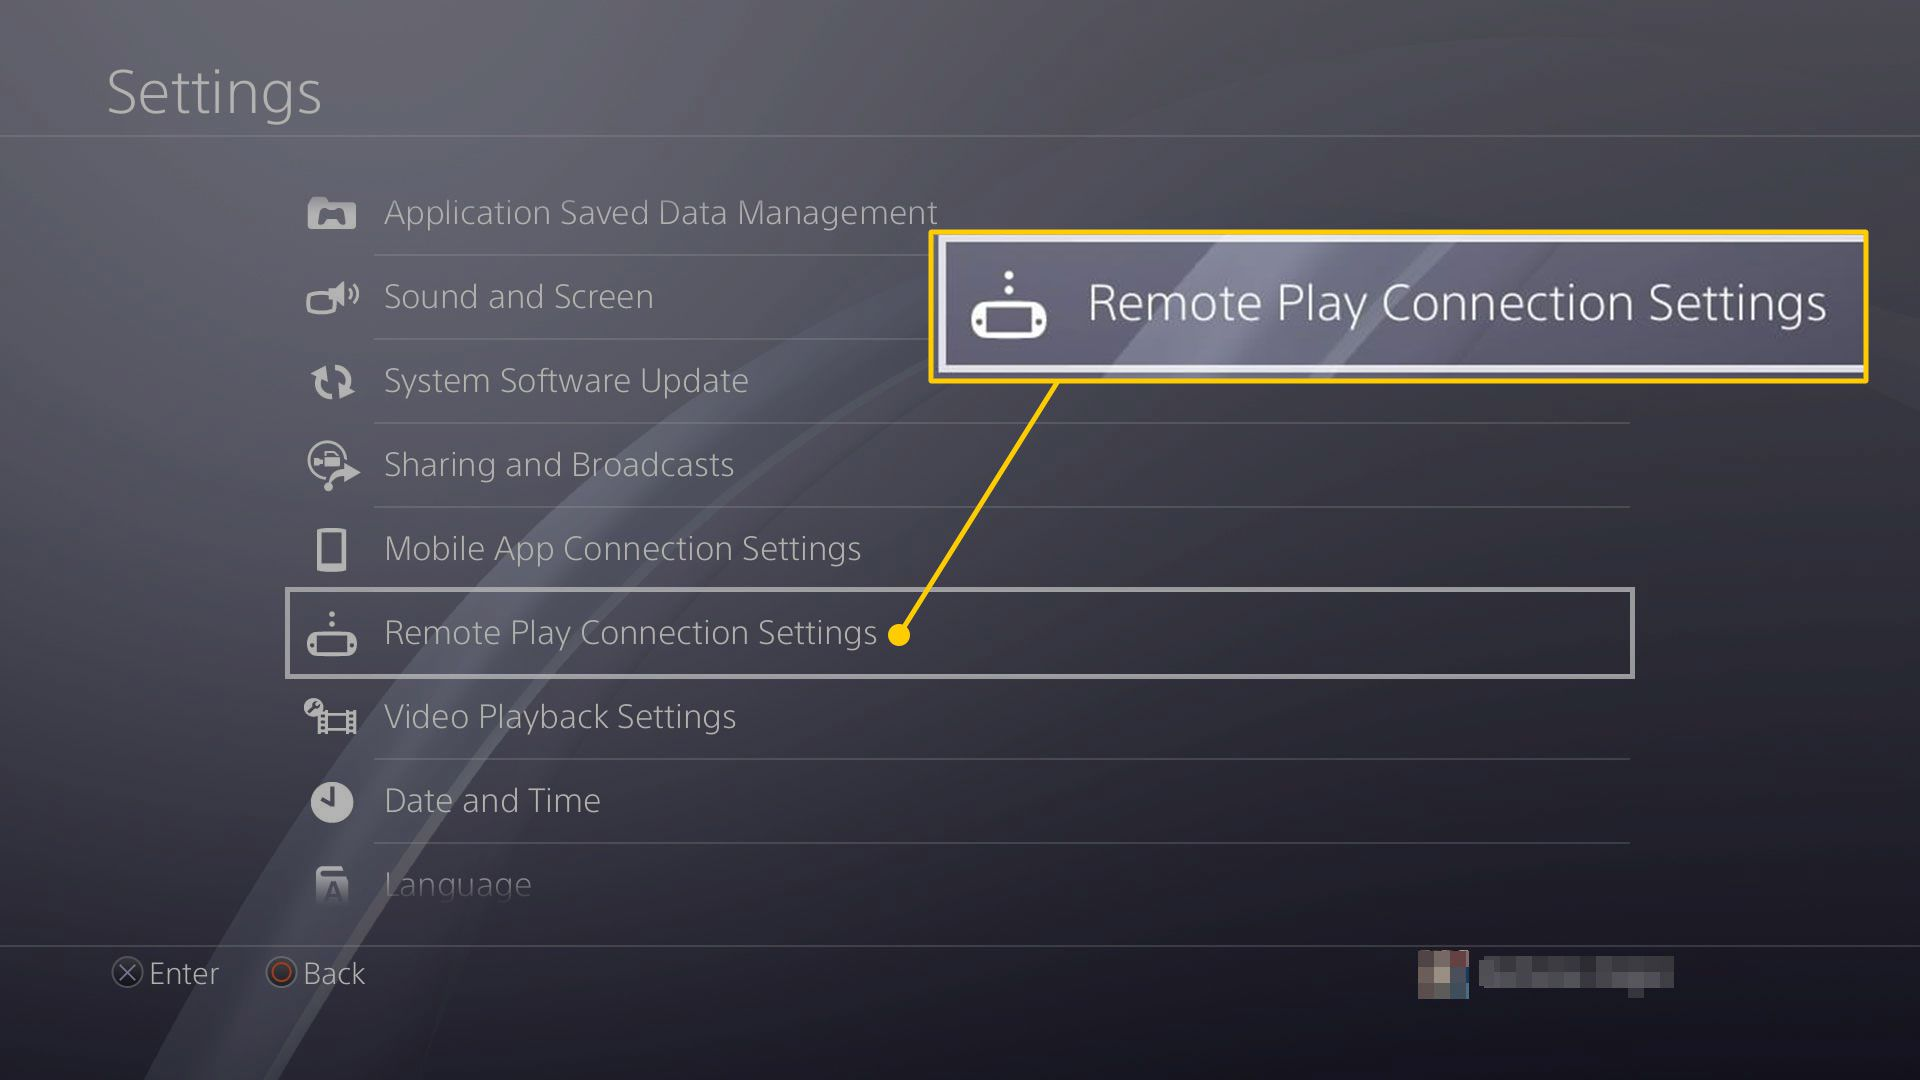 Remote Play Connection Settings in PS4 settings